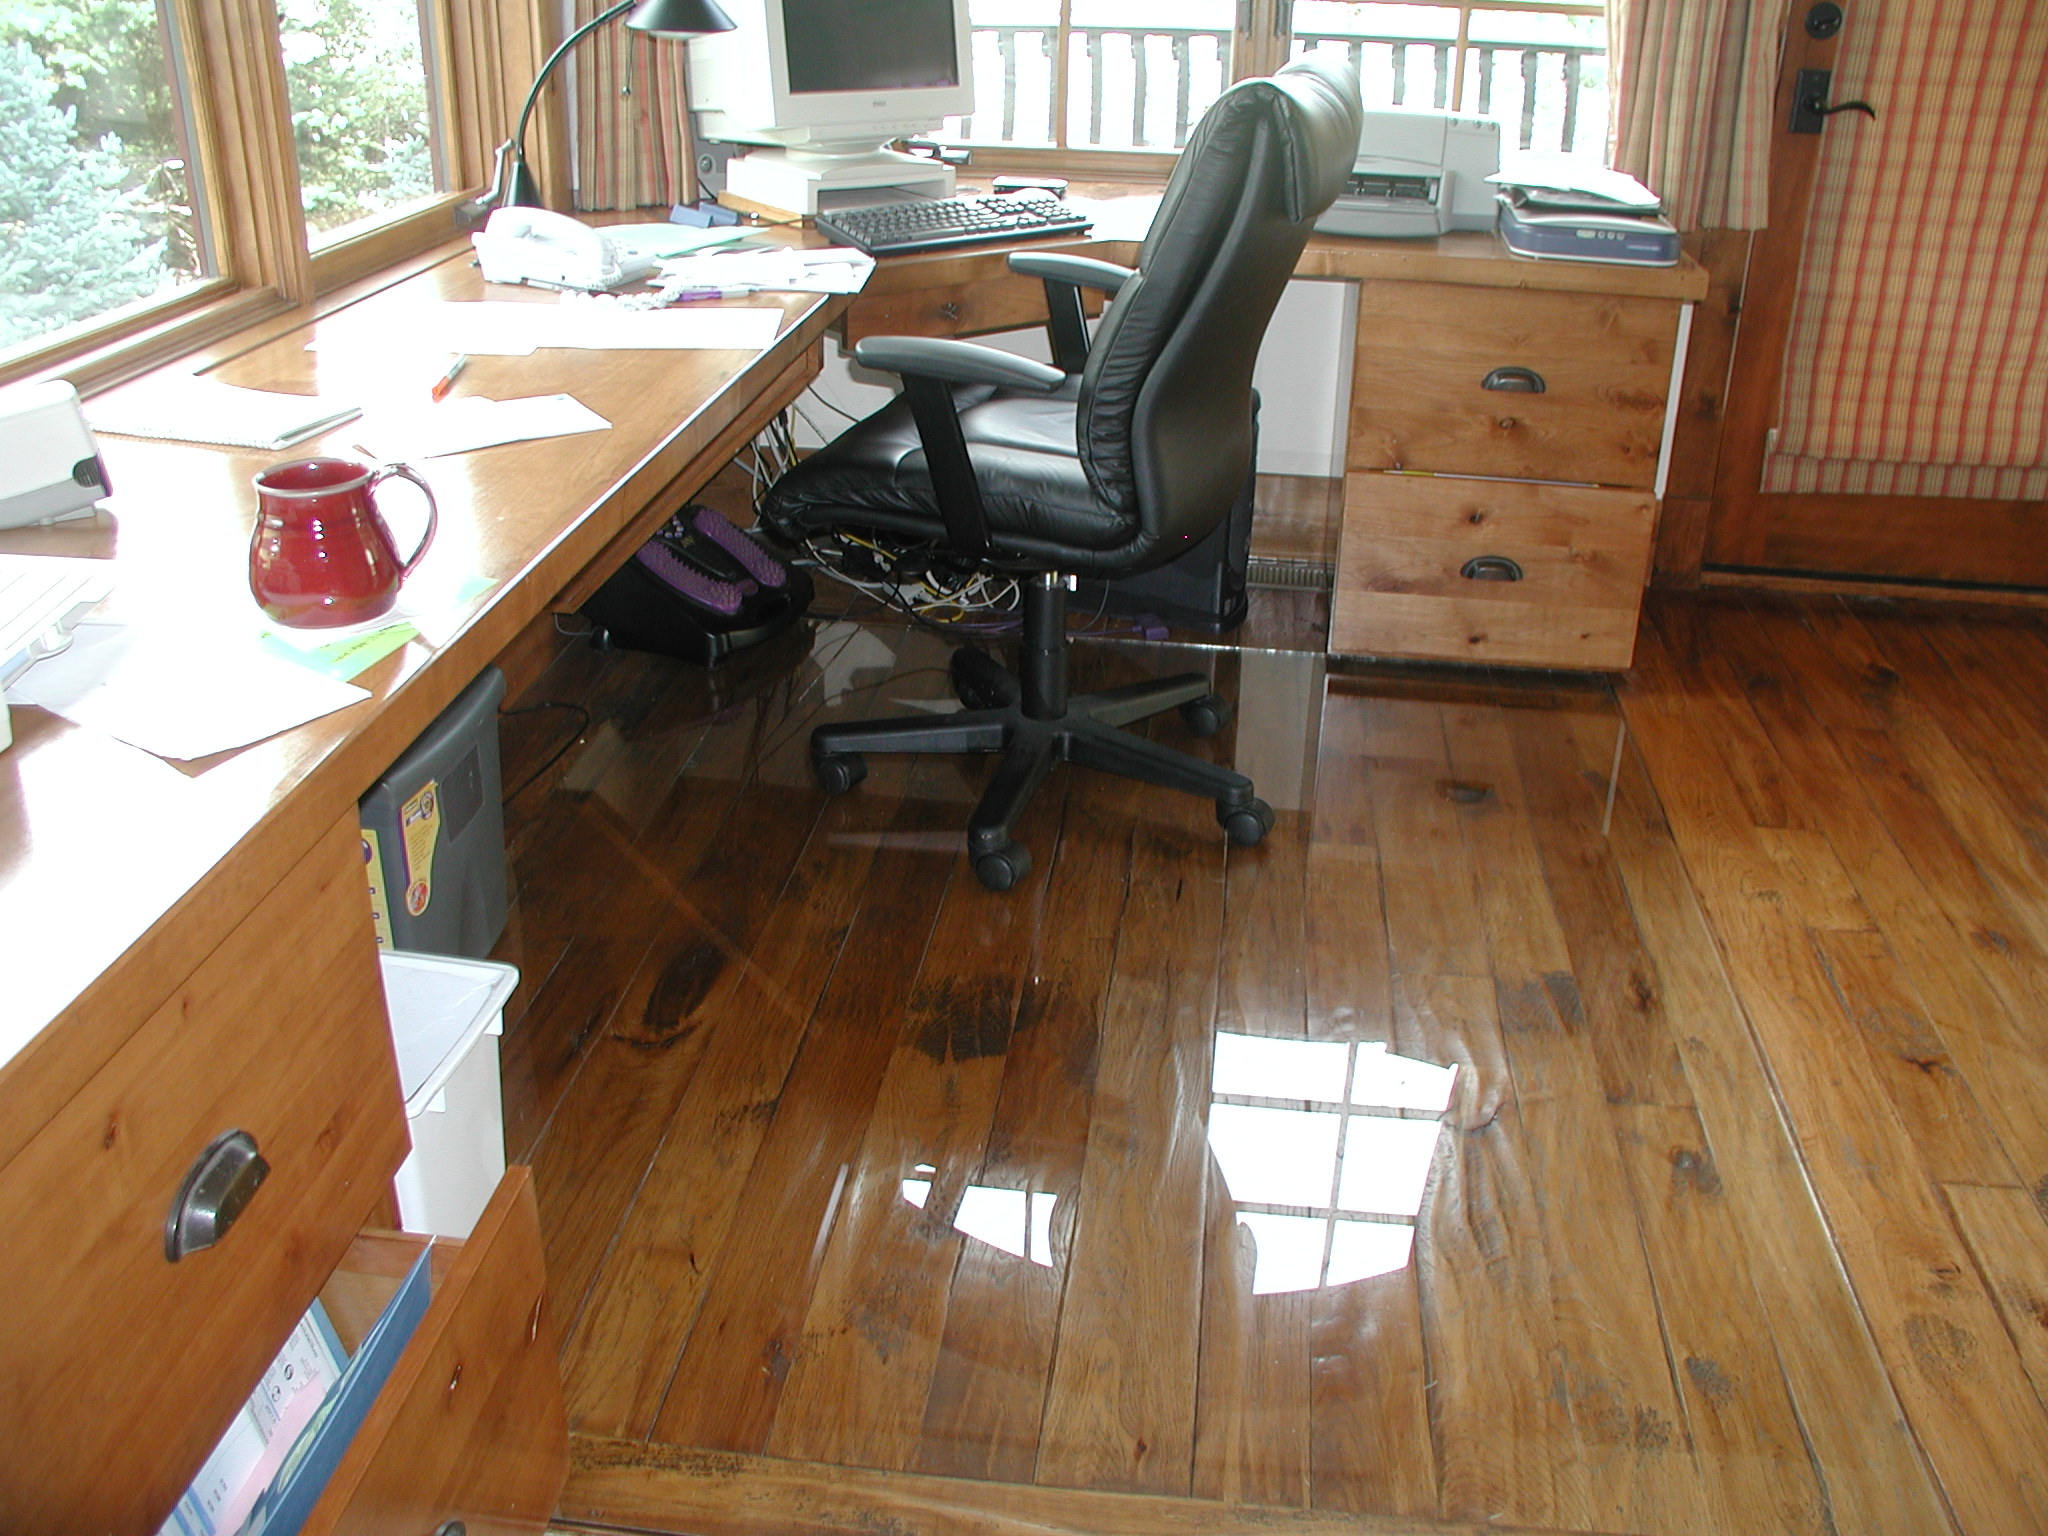 Desk Chairs For Wood Floors Transparent Floor Mats for Wooden